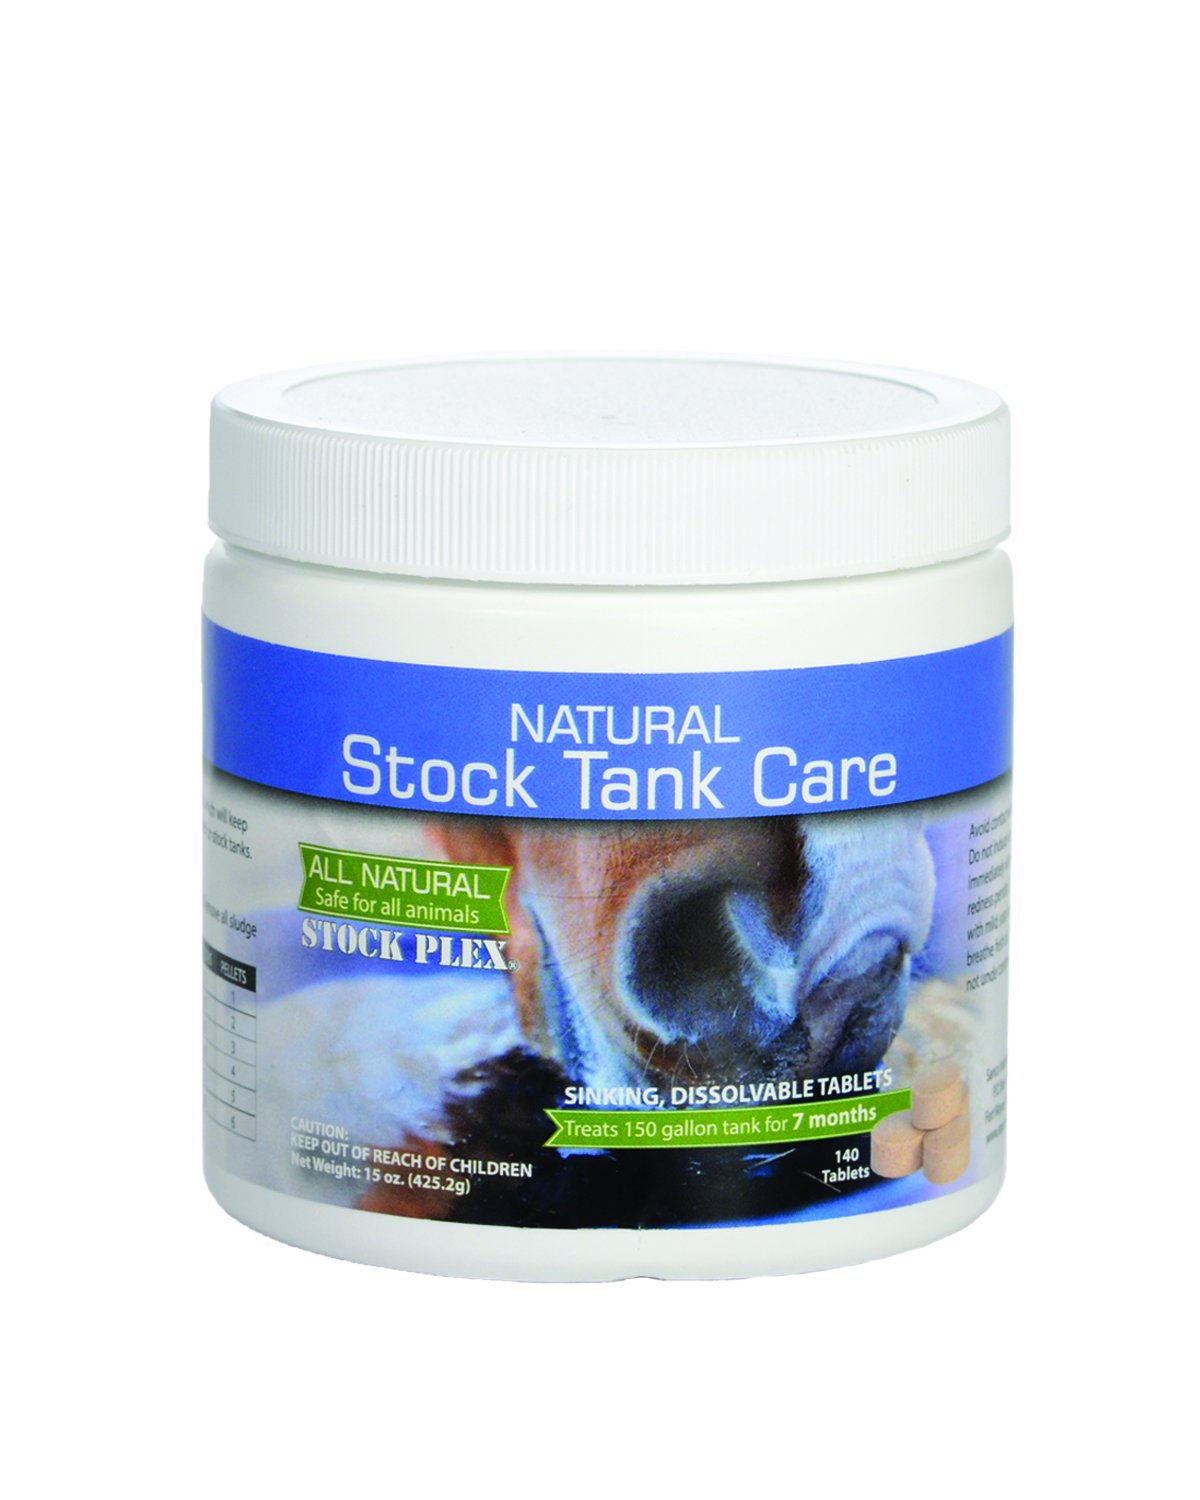 Natural Stock Tank Care - All Natural Stock Tank Cleaner - 7 Month Supply - Safe for all livestock and wildlife